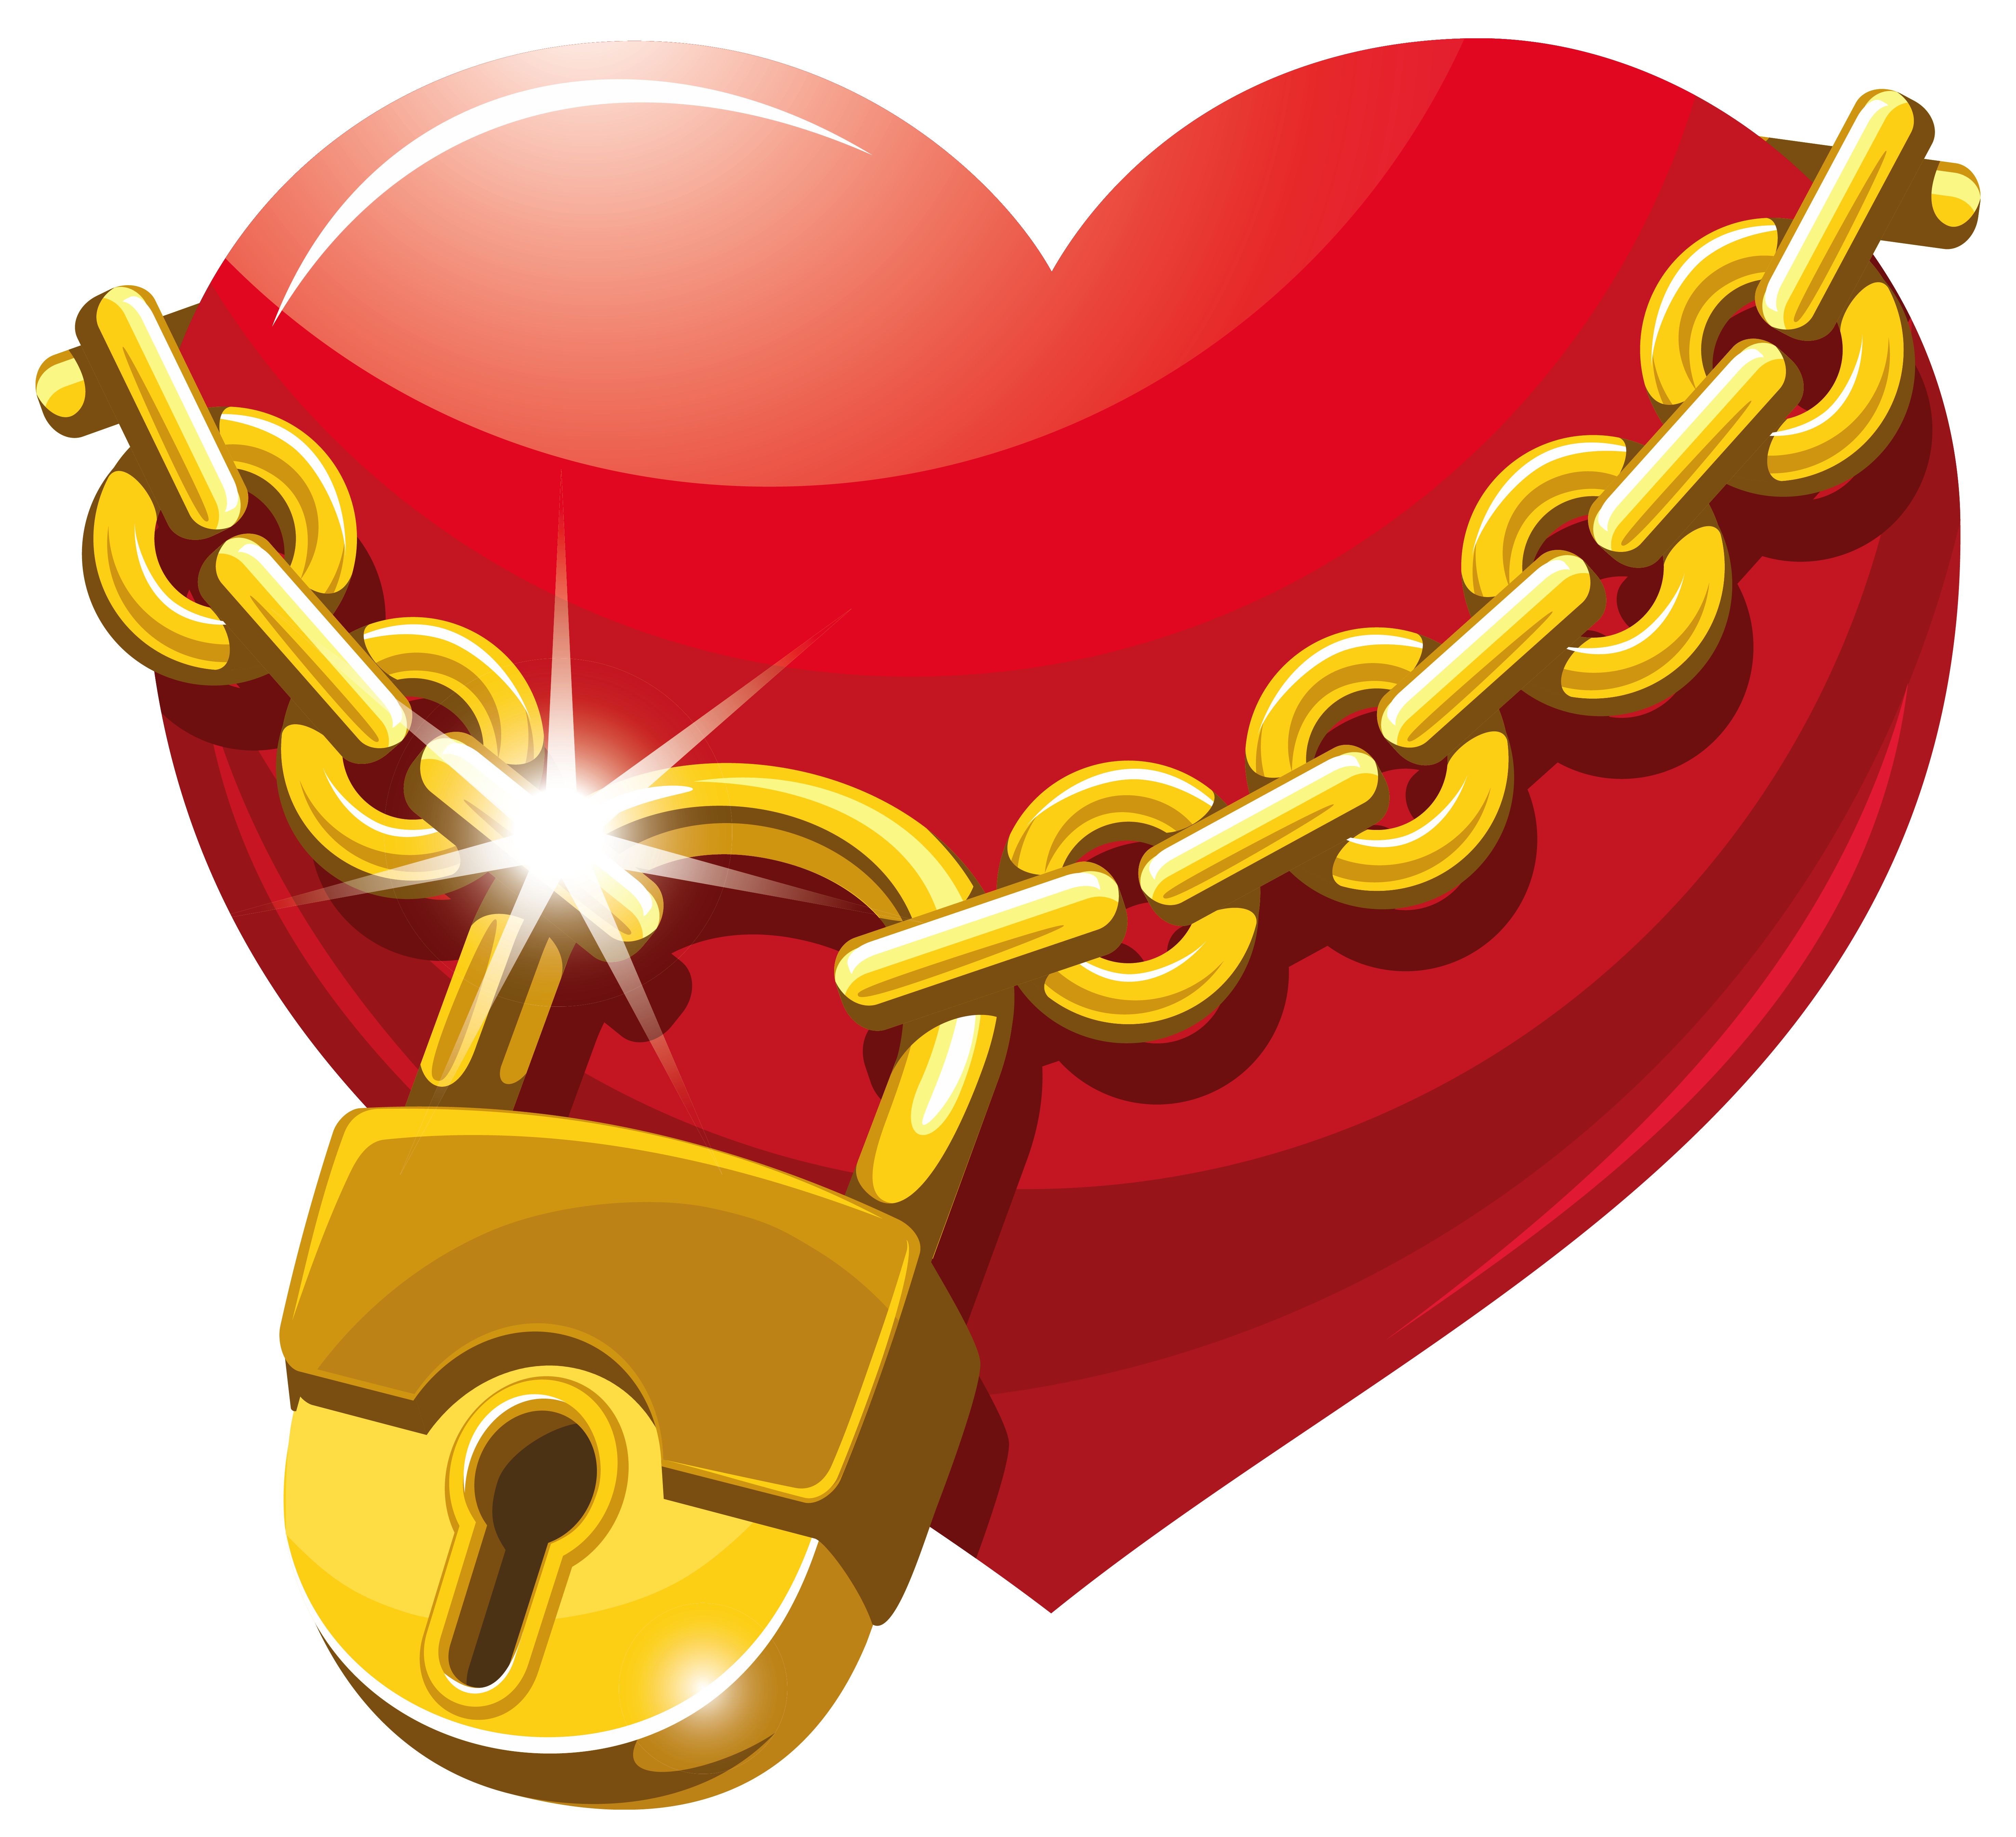 Locked book clipart image freeuse stock Writing-More Personal Than I Could Have Ever Imagined image freeuse stock